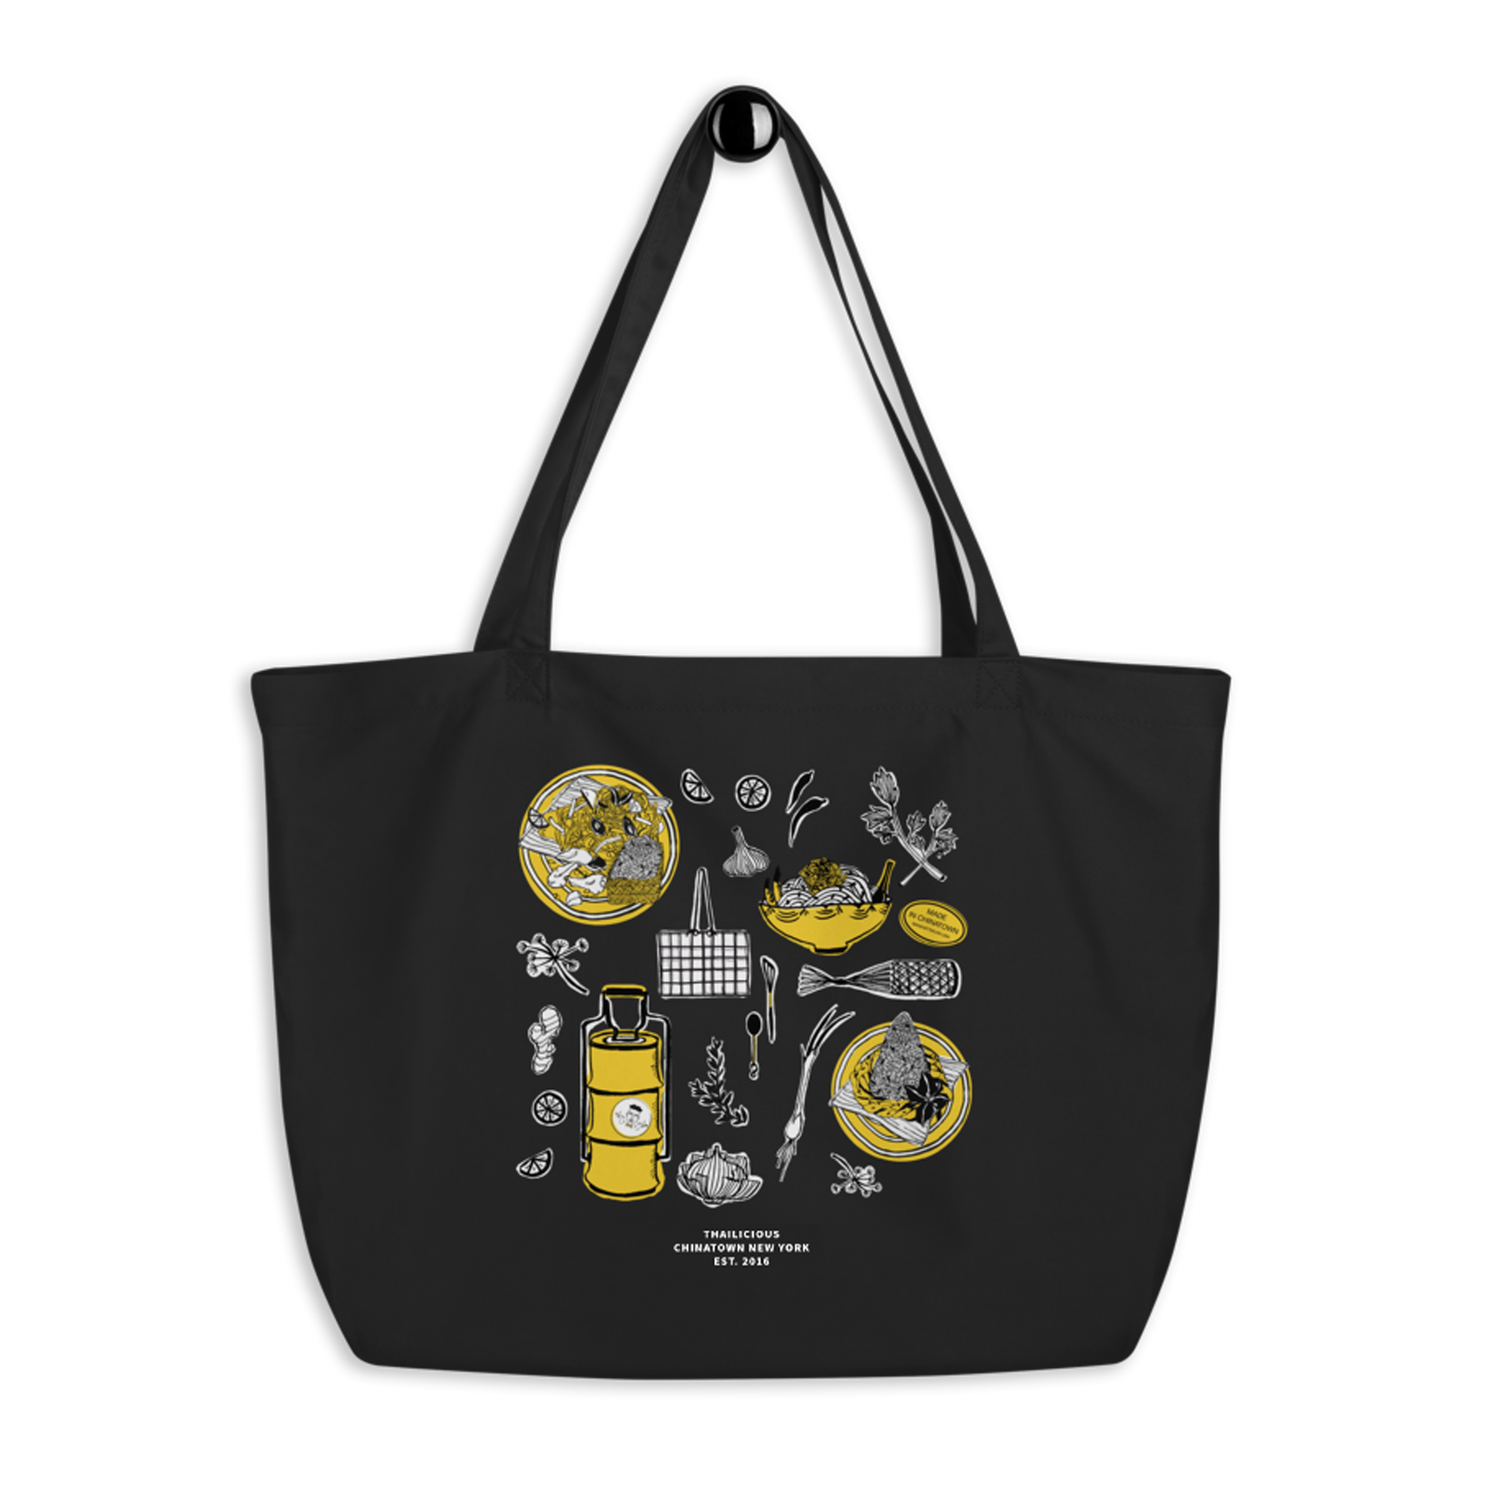 shopify-thailicious_product-image-Tote_01.png